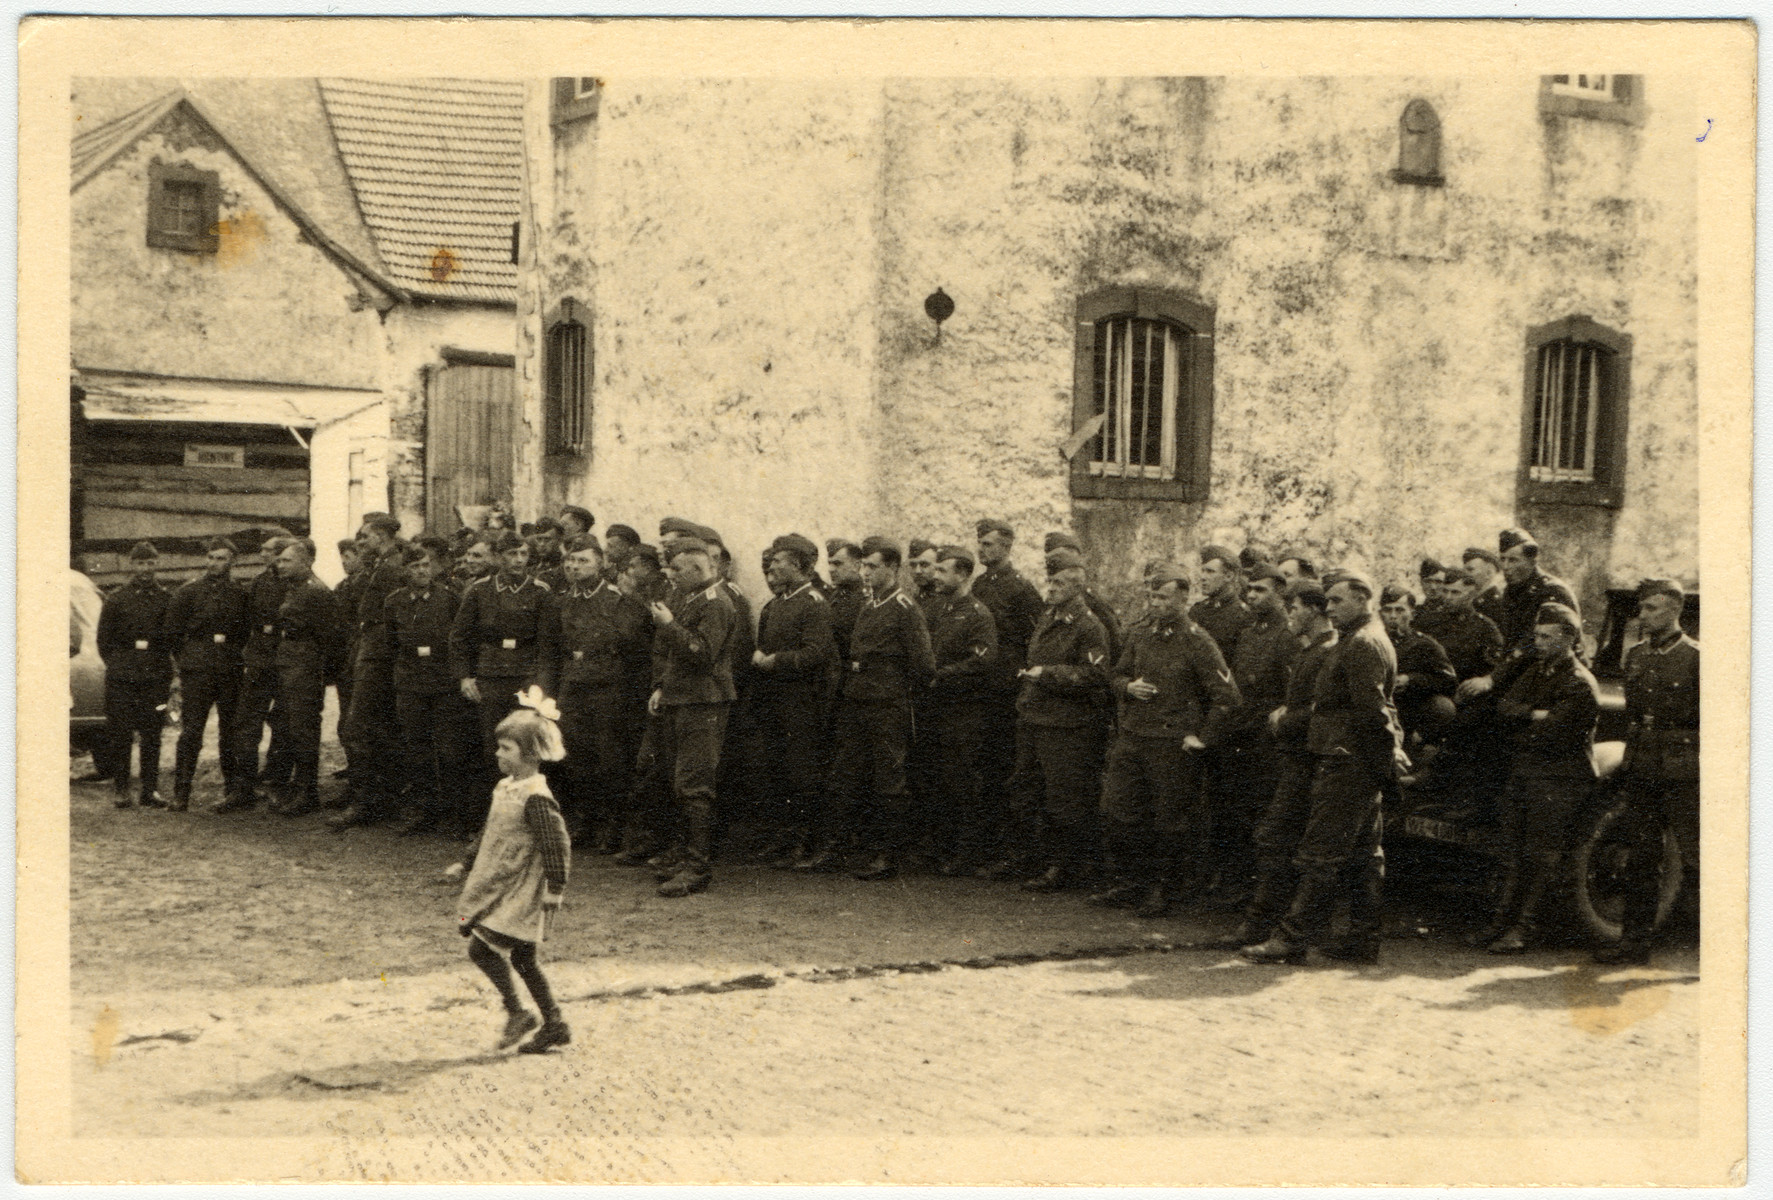 A young girl is pictured in front of a group of German soldiers.